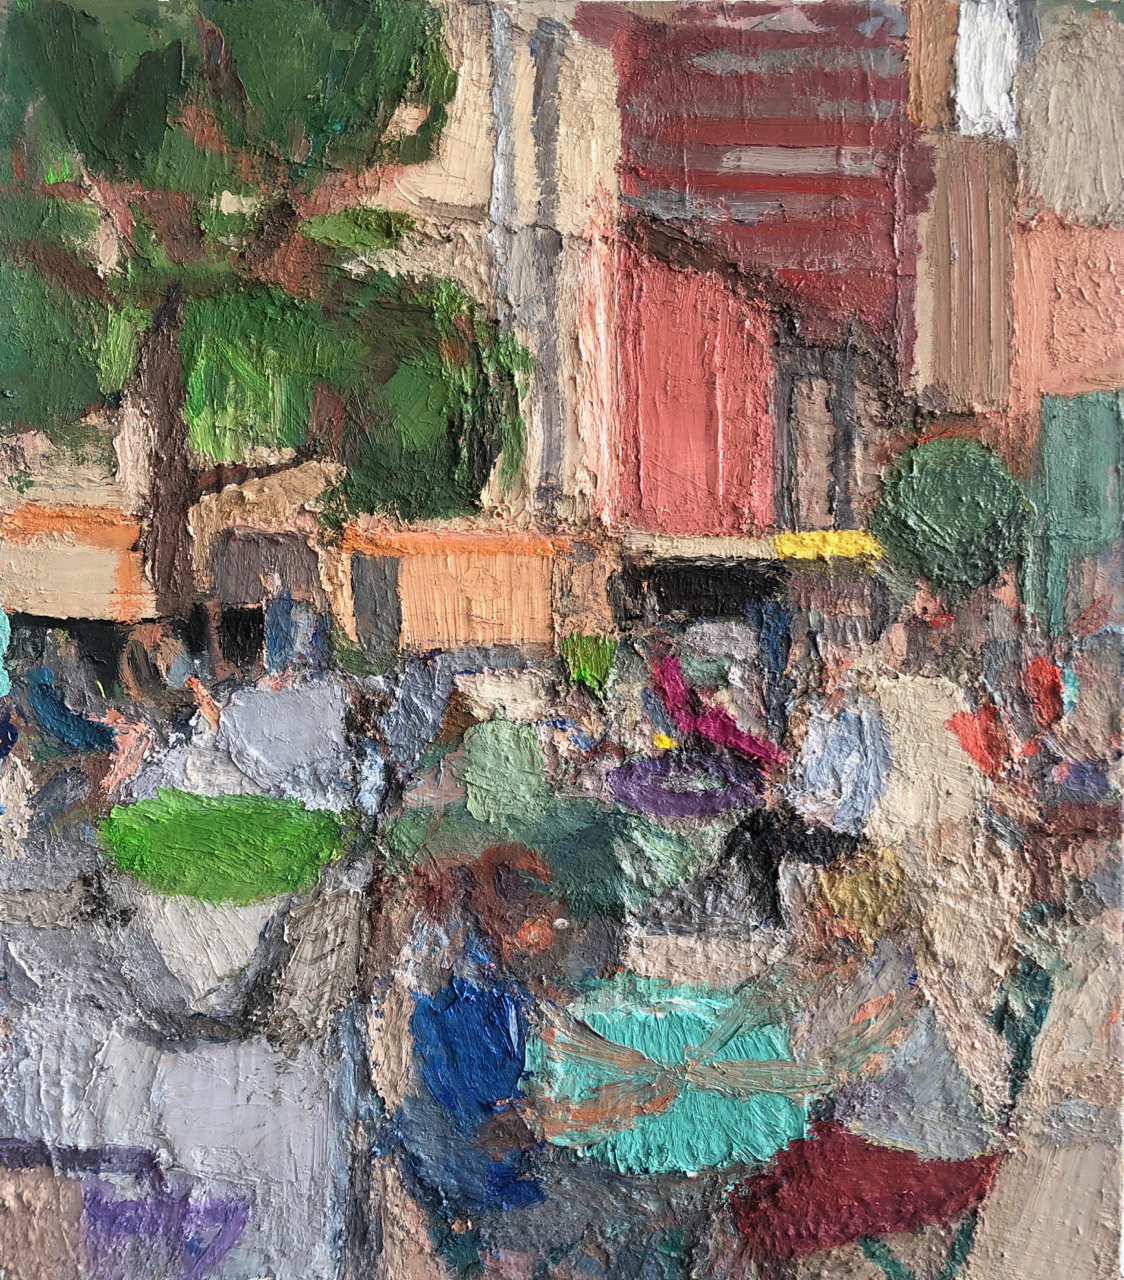 Tribeca 2, 2014-18, 54 x 42 inches, oil on linen